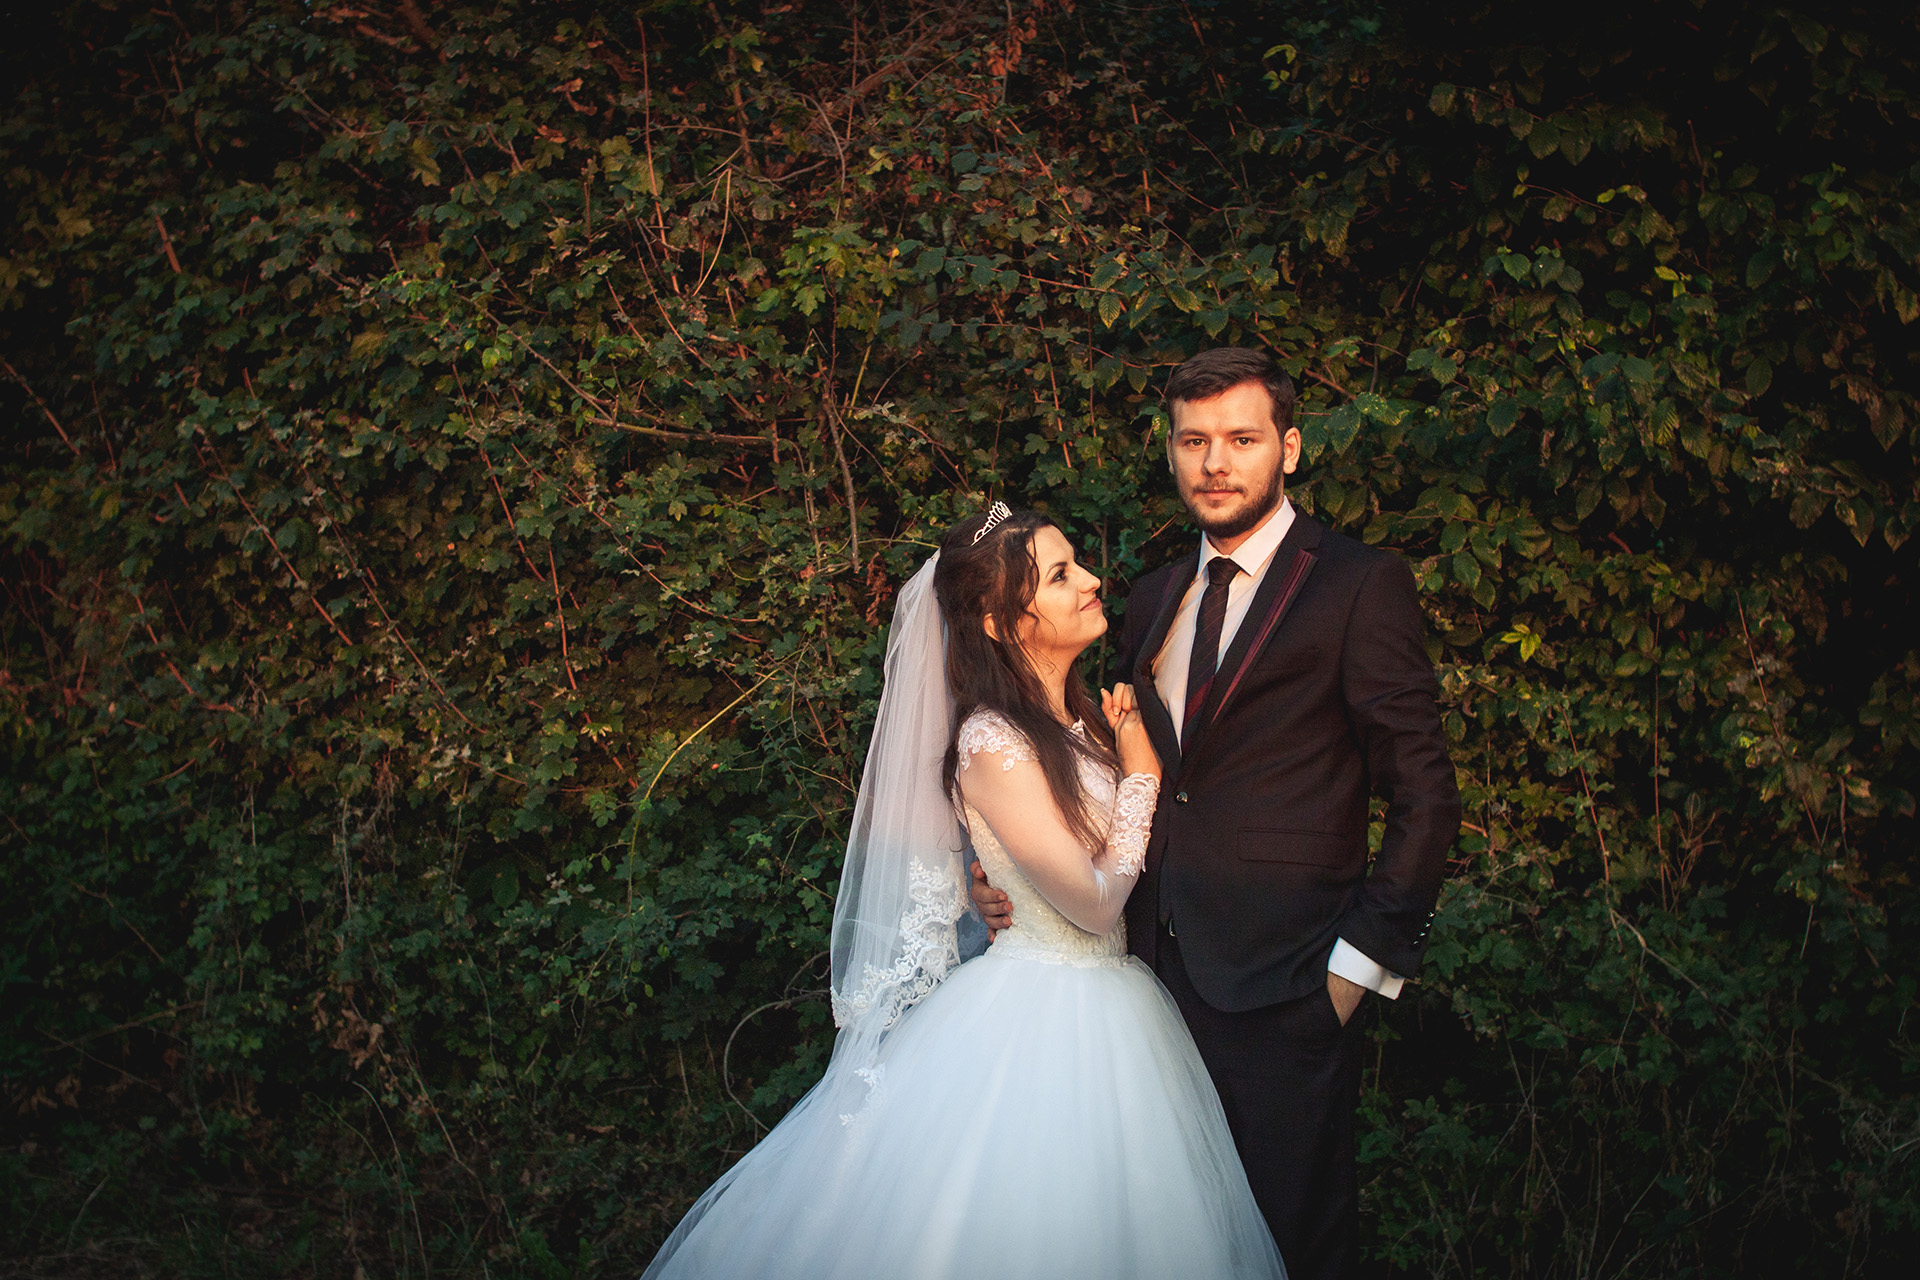 Laurentiu & Rebeca - After wedding